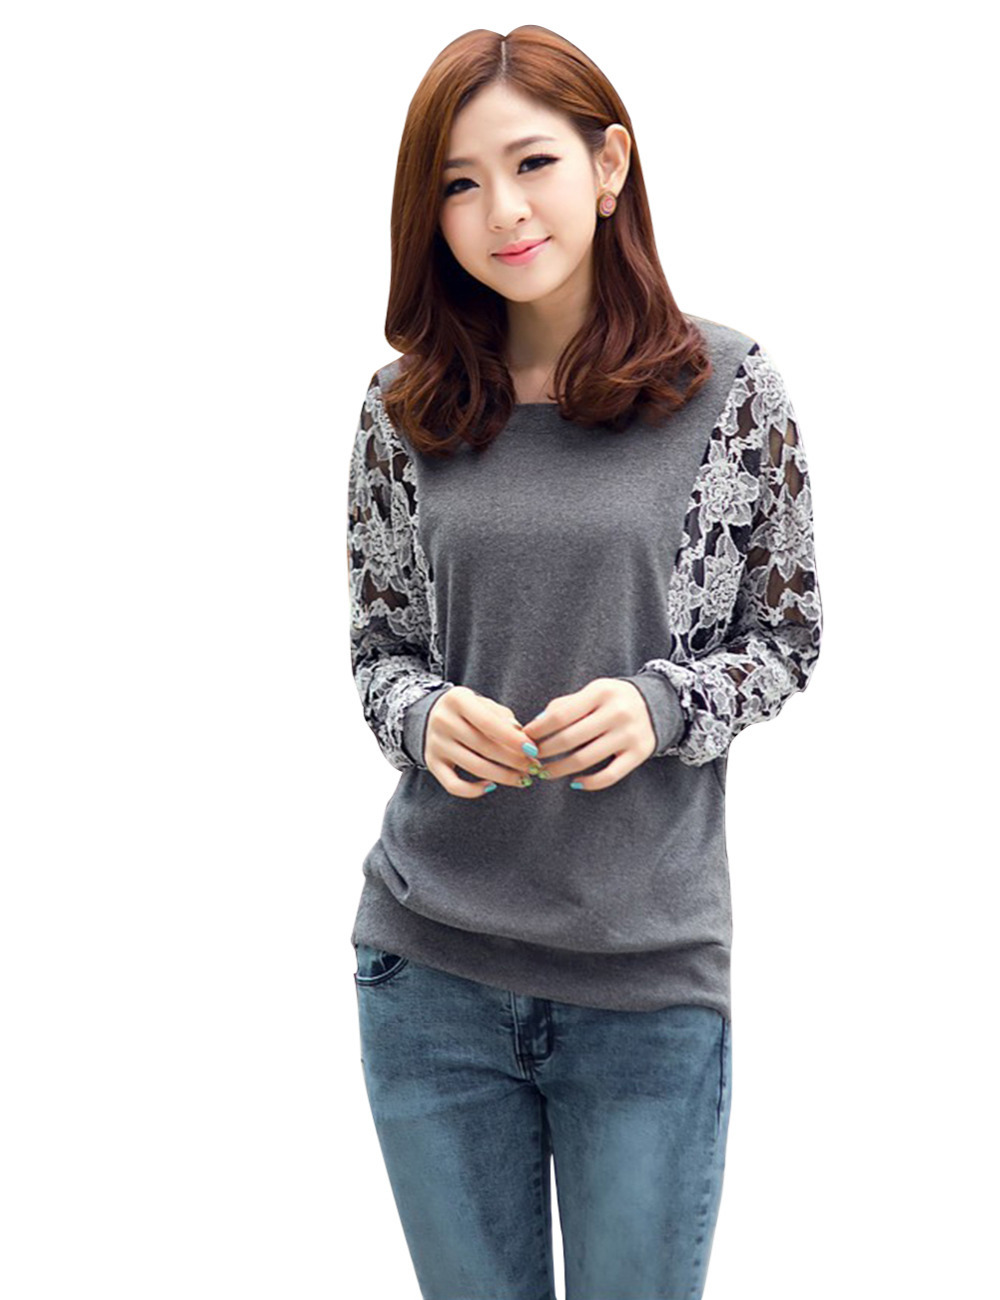 Women's T-shirts Long Sleeve Crew Neck Batwing Dolman Lace Hollow Casual Loose Tops T-Shirt Wholesales Shirts Free Shipping